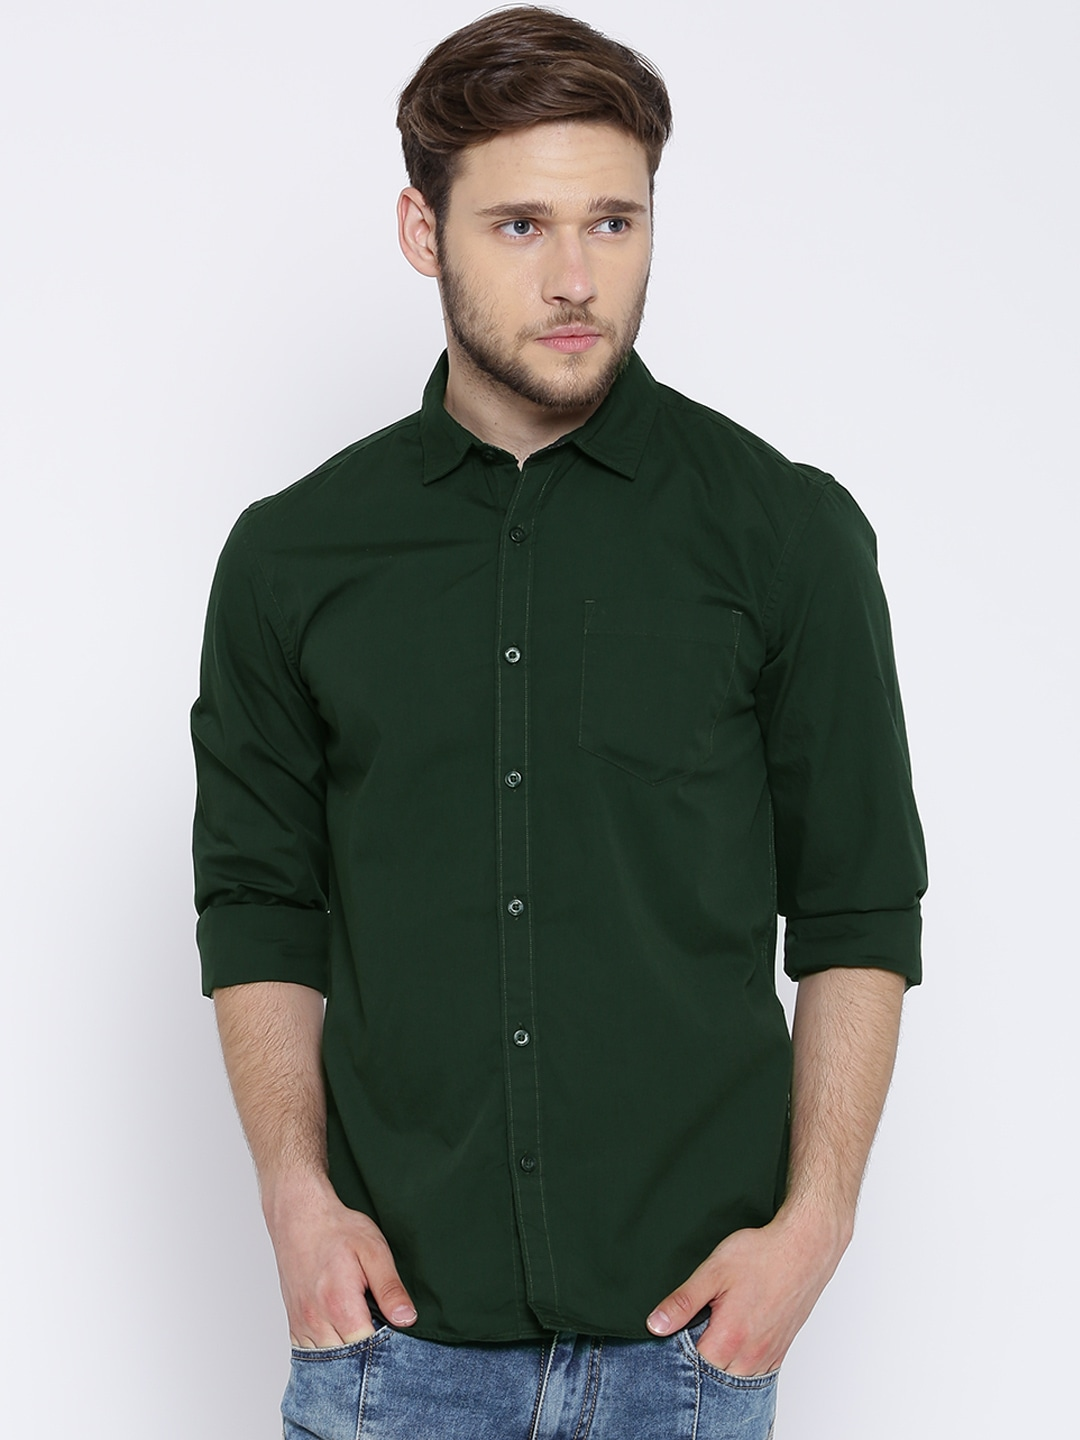 Dark green mens shirt artee shirt Emerald green mens dress shirt